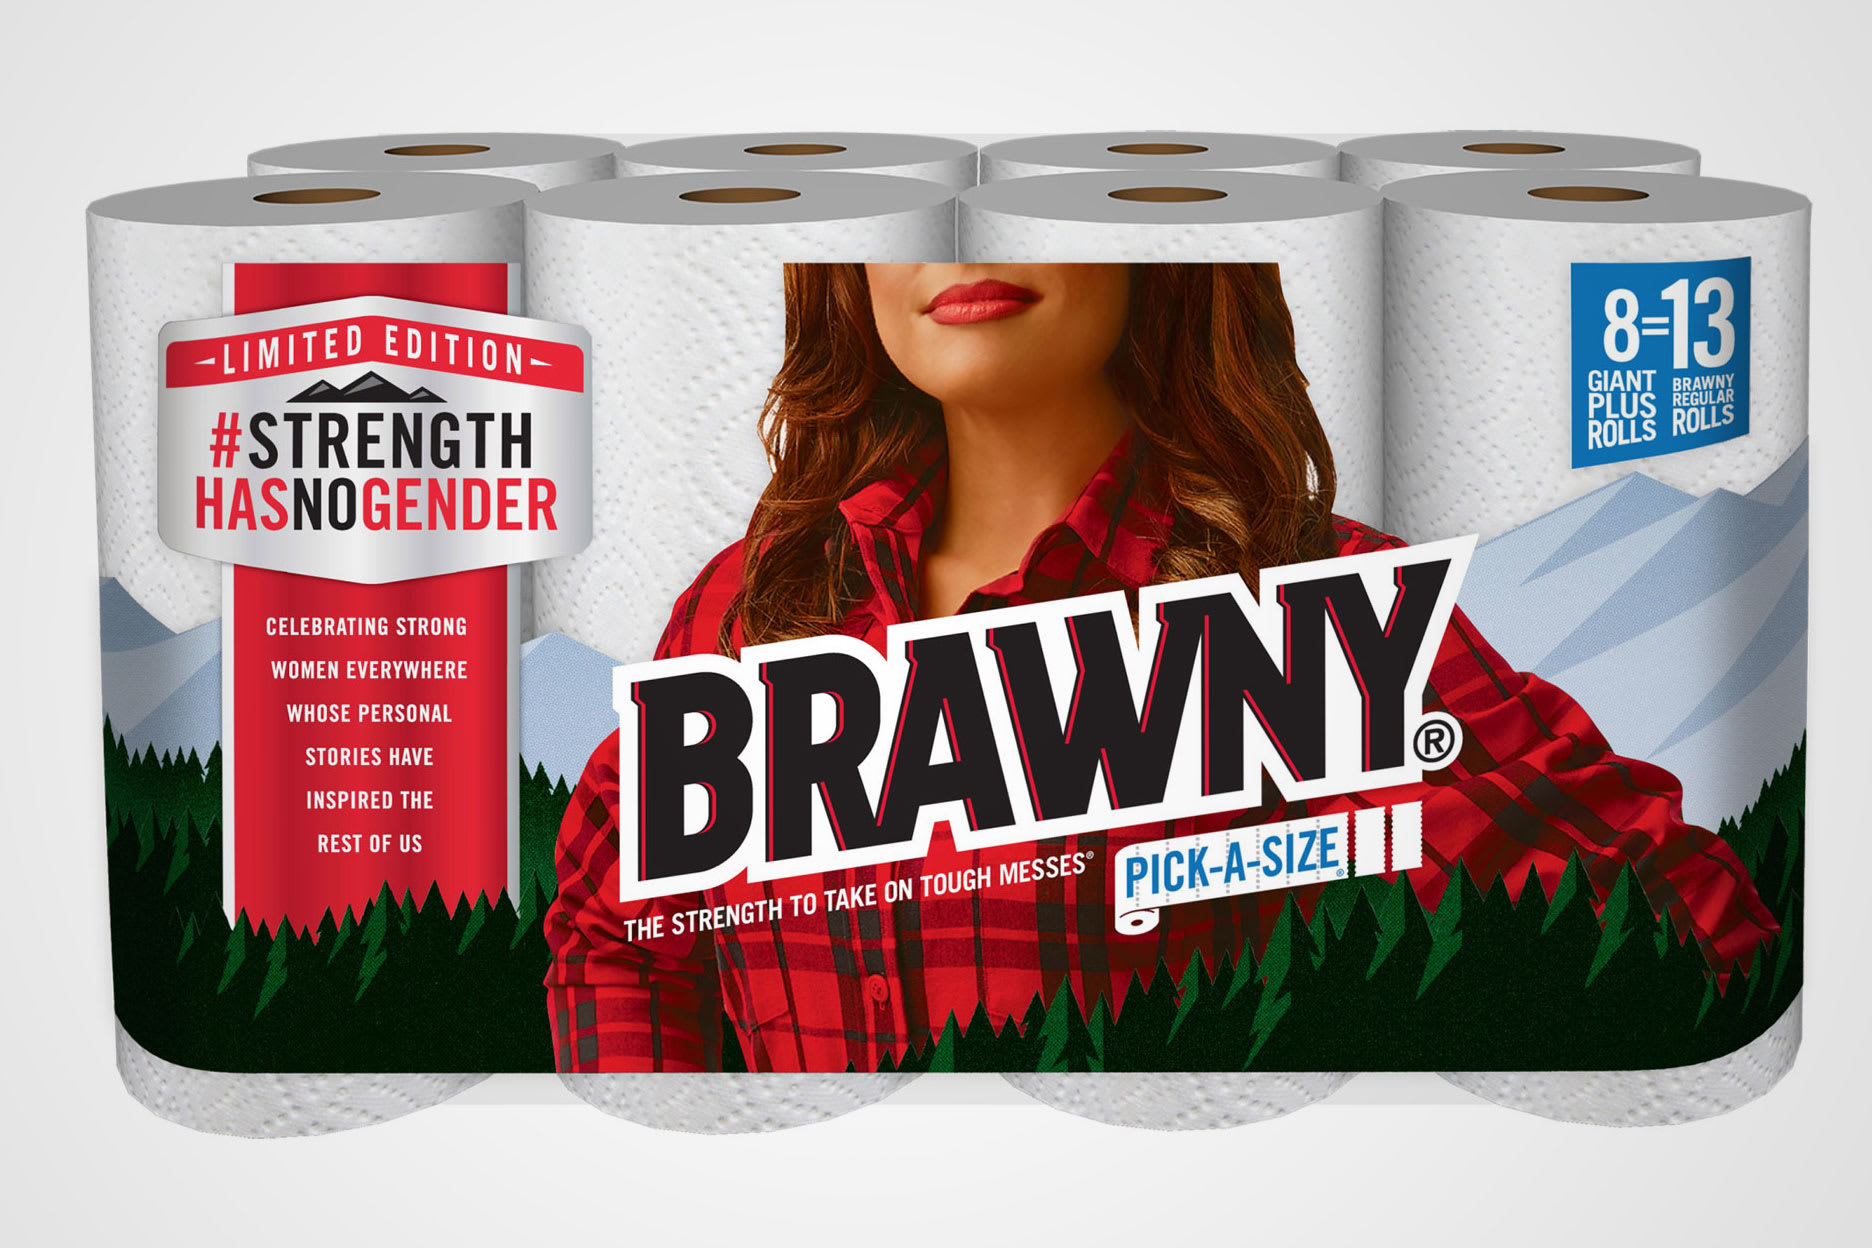 The Brawny Woman? Paper towel brand replaces iconic logo for.